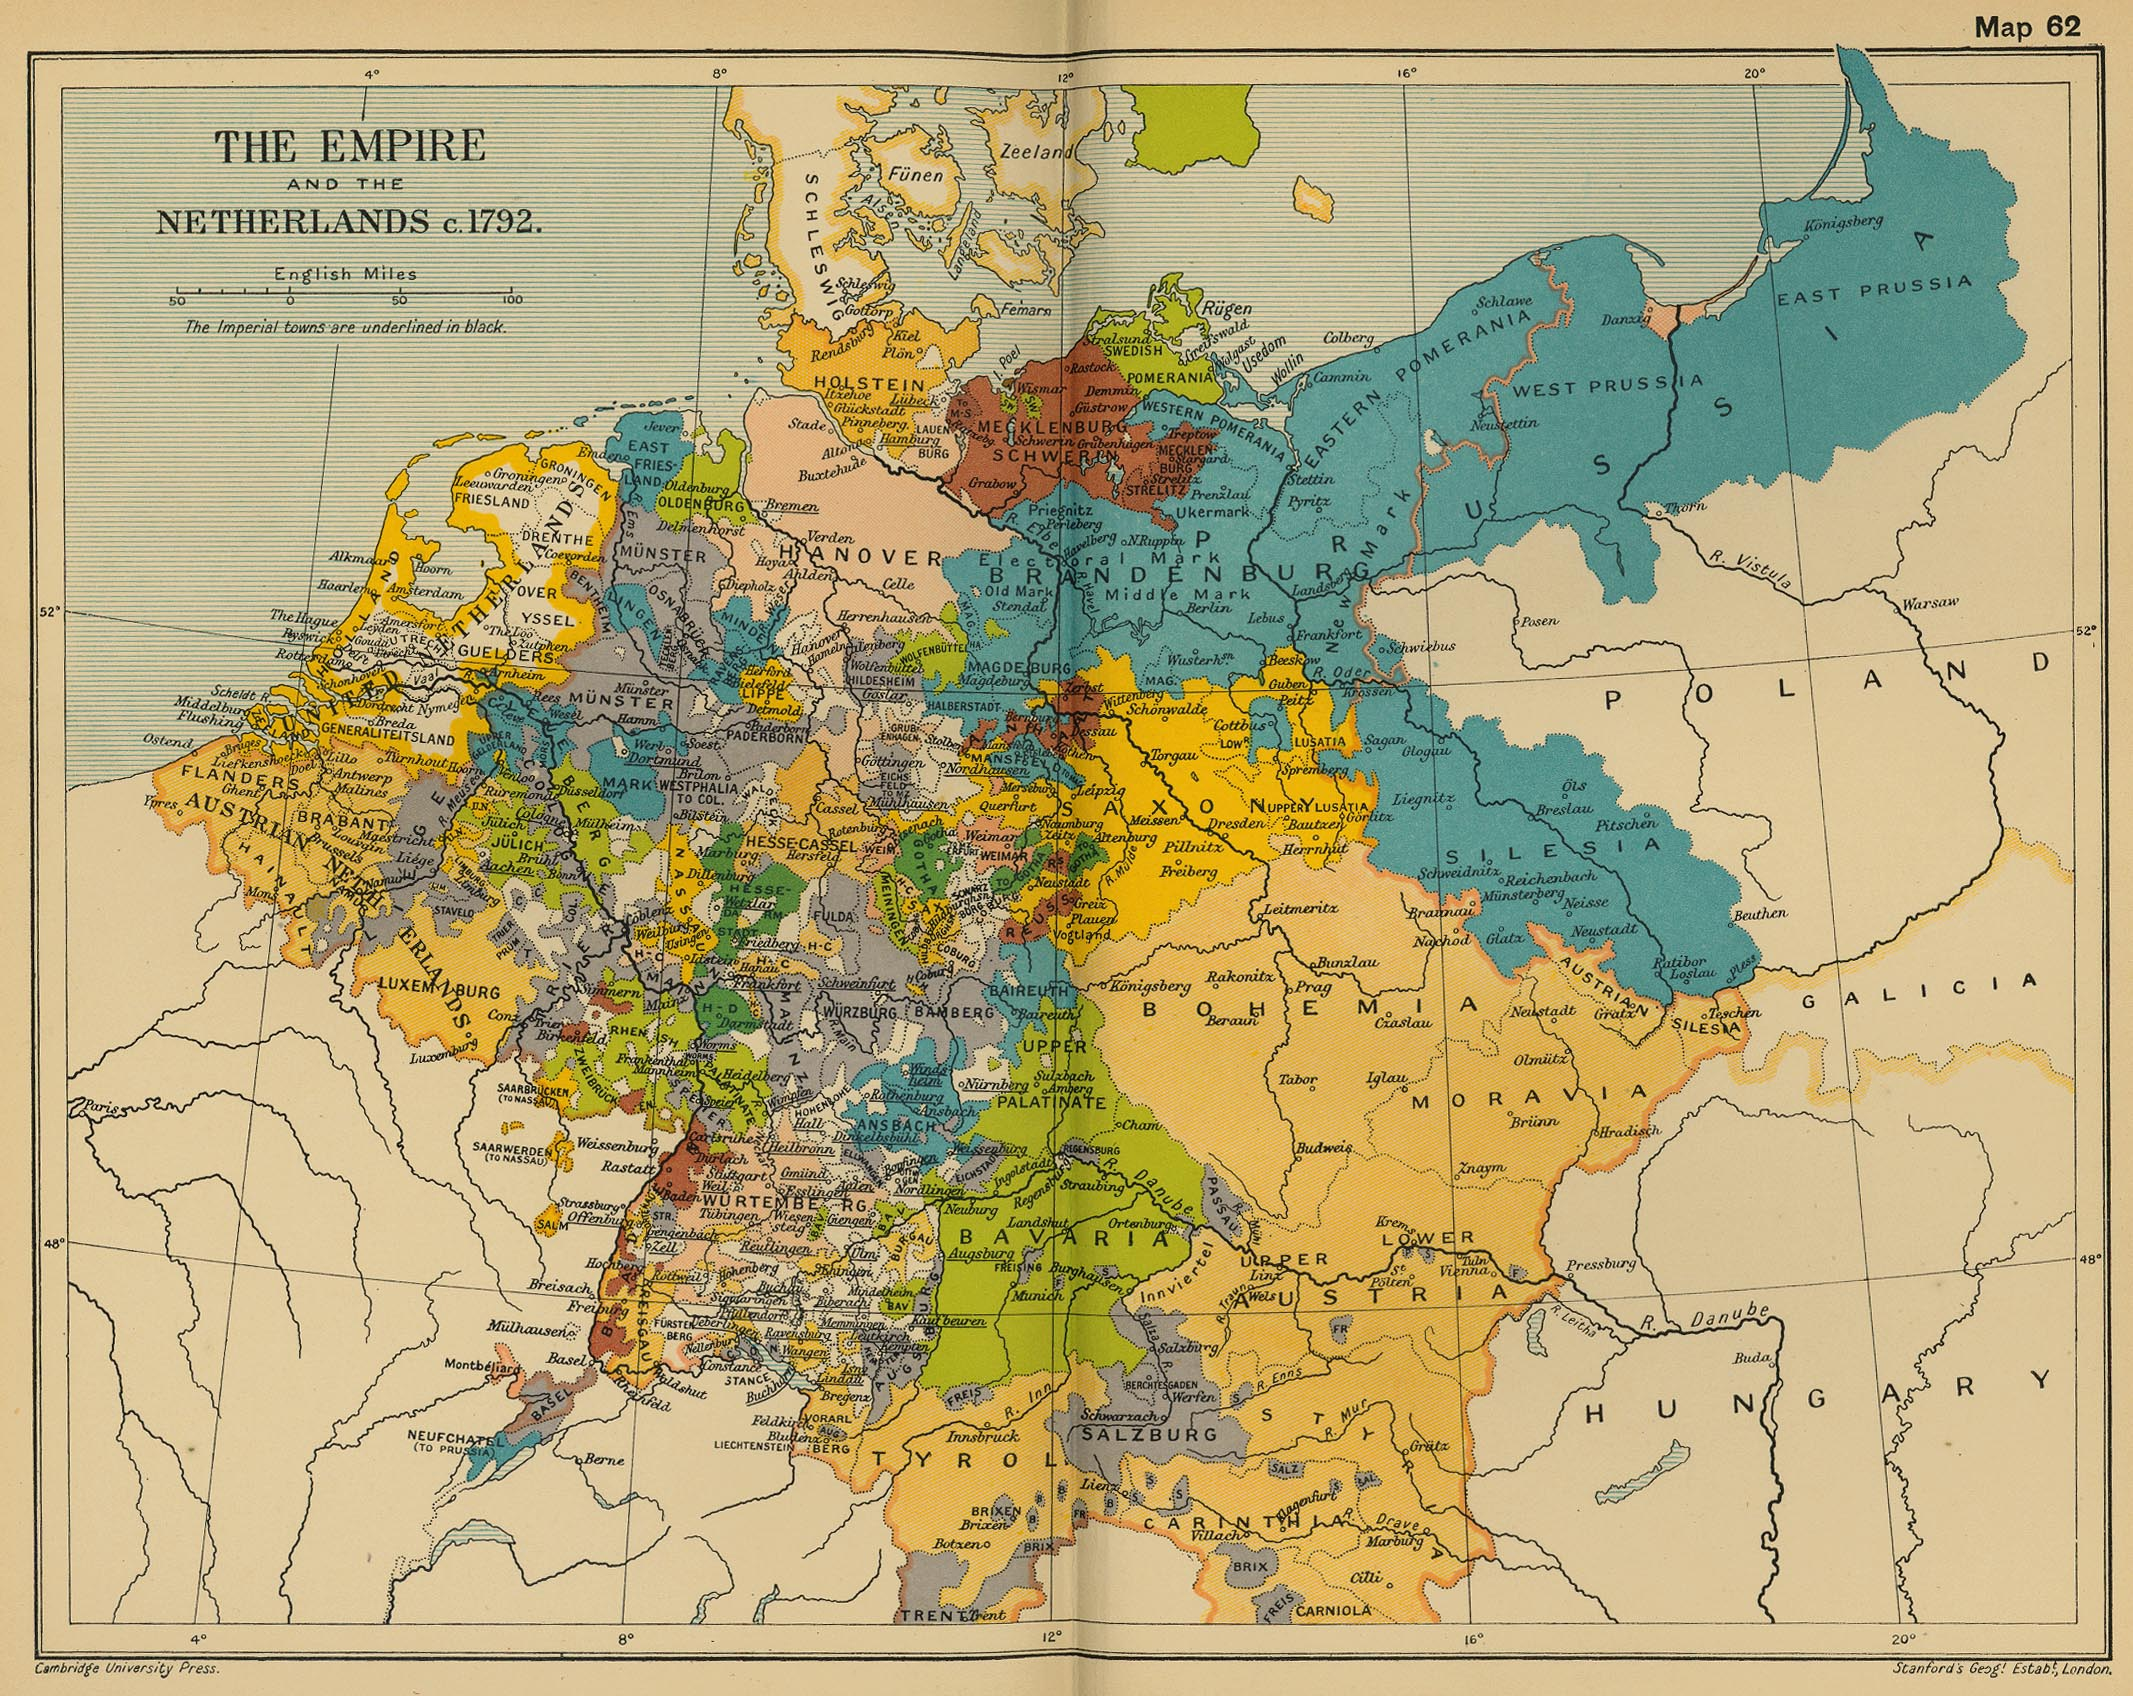 Map of Central Europe 1792: The Empire and the Netherlands